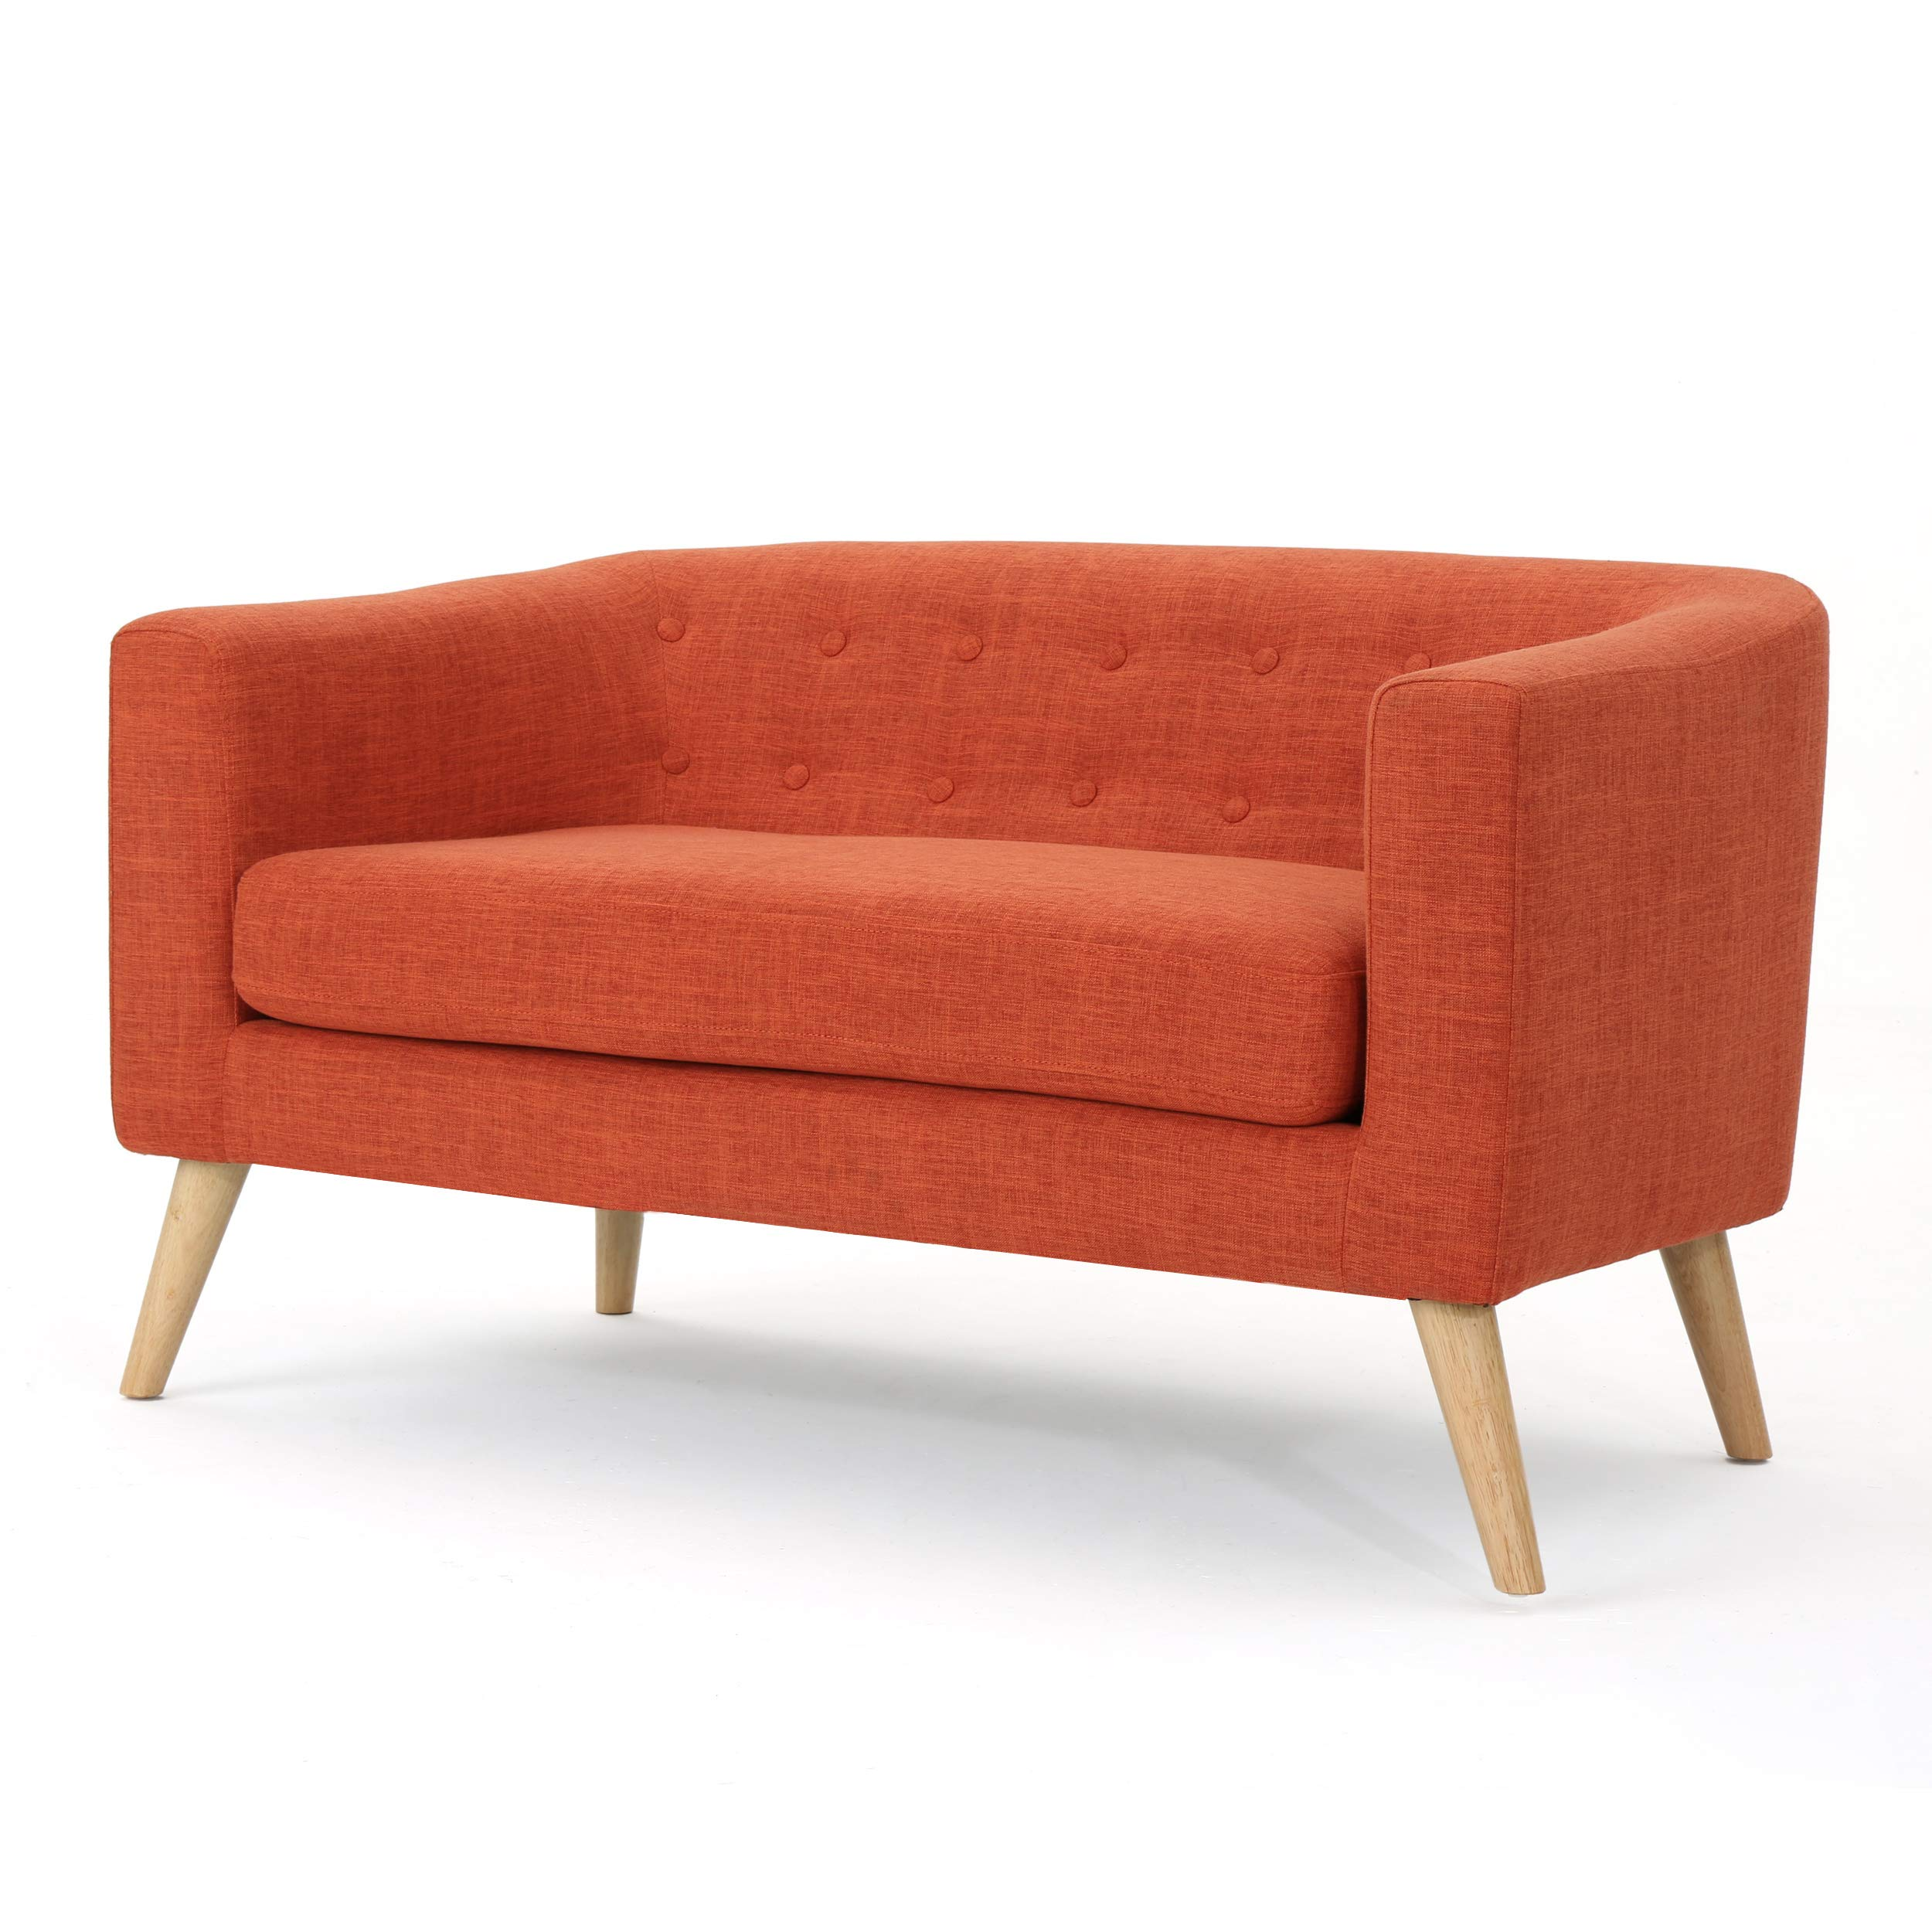 Christopher Knight Home Bridie Loveseat, Muted Orange by Christopher Knight Home